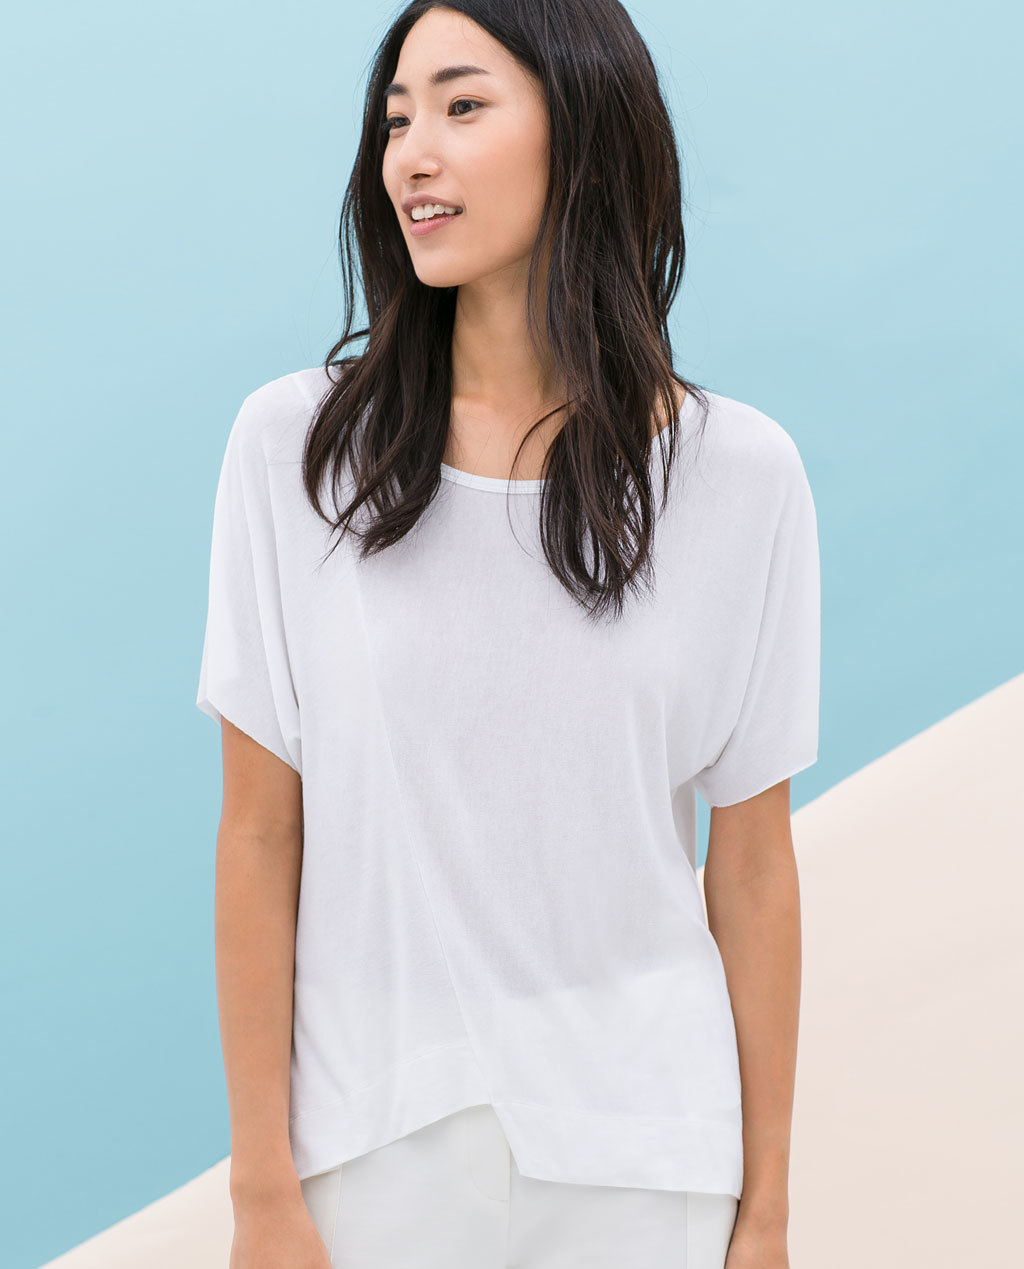 Top With Asymmetric Hem - neckline: round neck; sleeve style: dolman/batwing; pattern: plain; style: t-shirt; predominant colour: white; occasions: casual, creative work; length: standard; fibres: viscose/rayon - stretch; fit: loose; sleeve length: short sleeve; pattern type: fabric; texture group: jersey - stretchy/drapey; season: s/s 2014